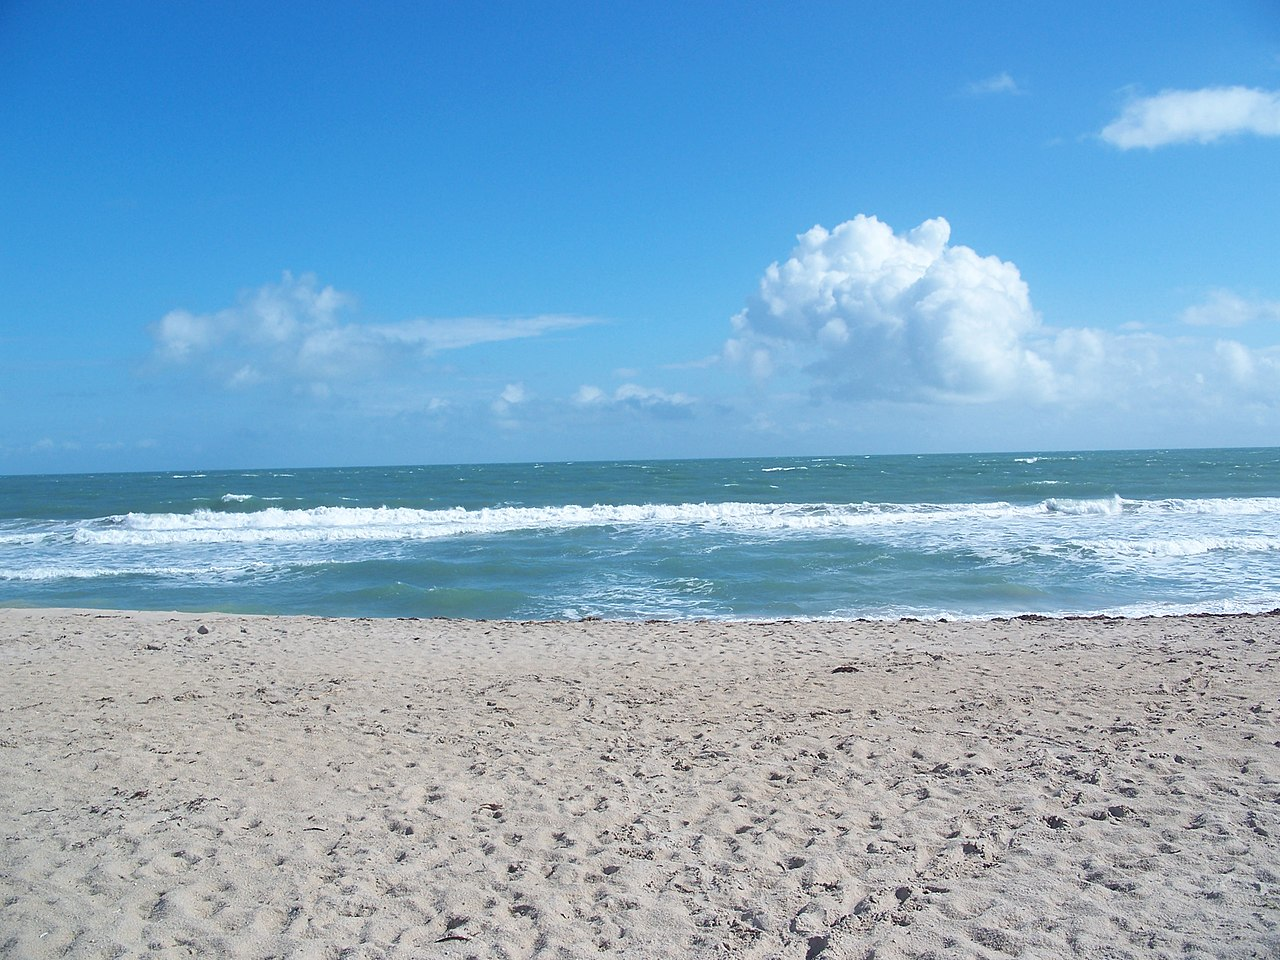 A fishing boat in rough seas off Fort Pierce Inlet State